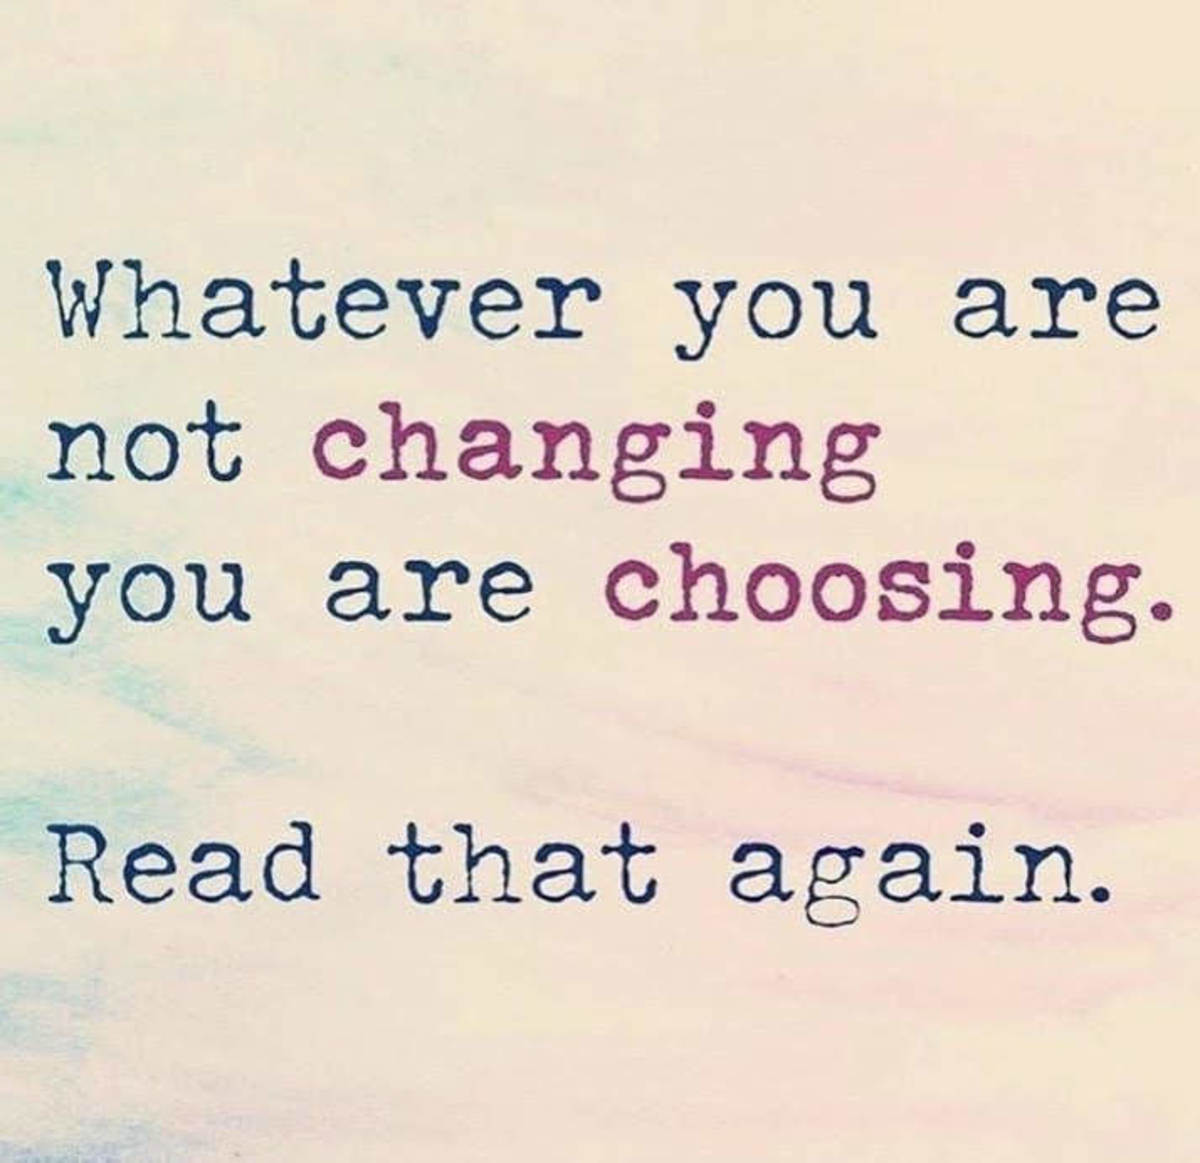 To not change course is to choose the road you are on.